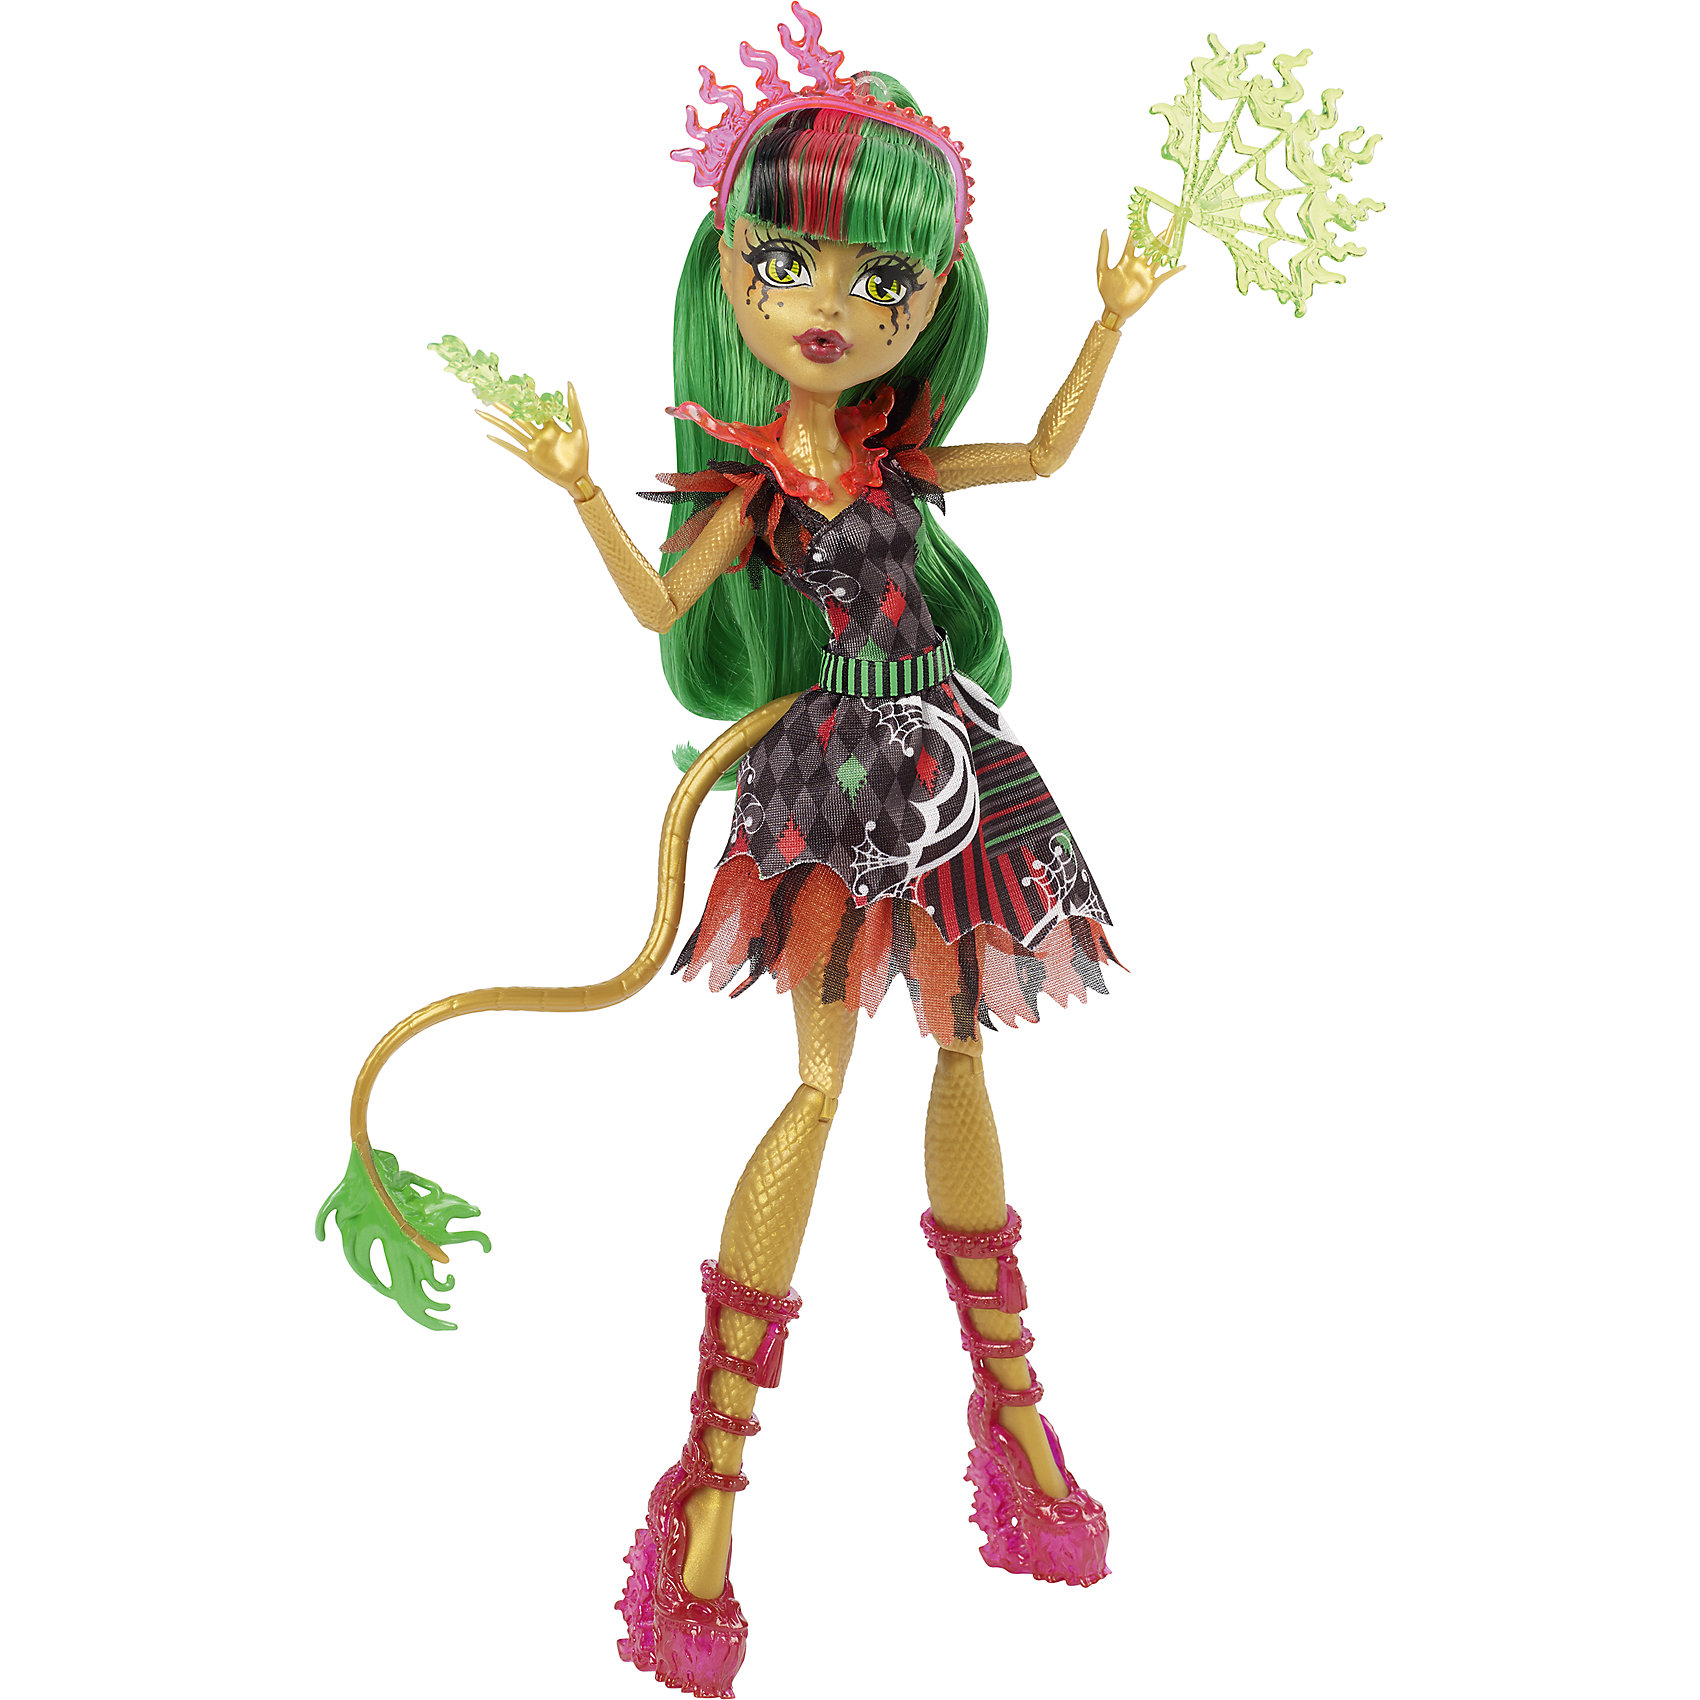 Mattel Кукла Джинафайер Лонг Шапито, Monster High mattel monster high dnx65 дракулаура в трансформирующемся наряде